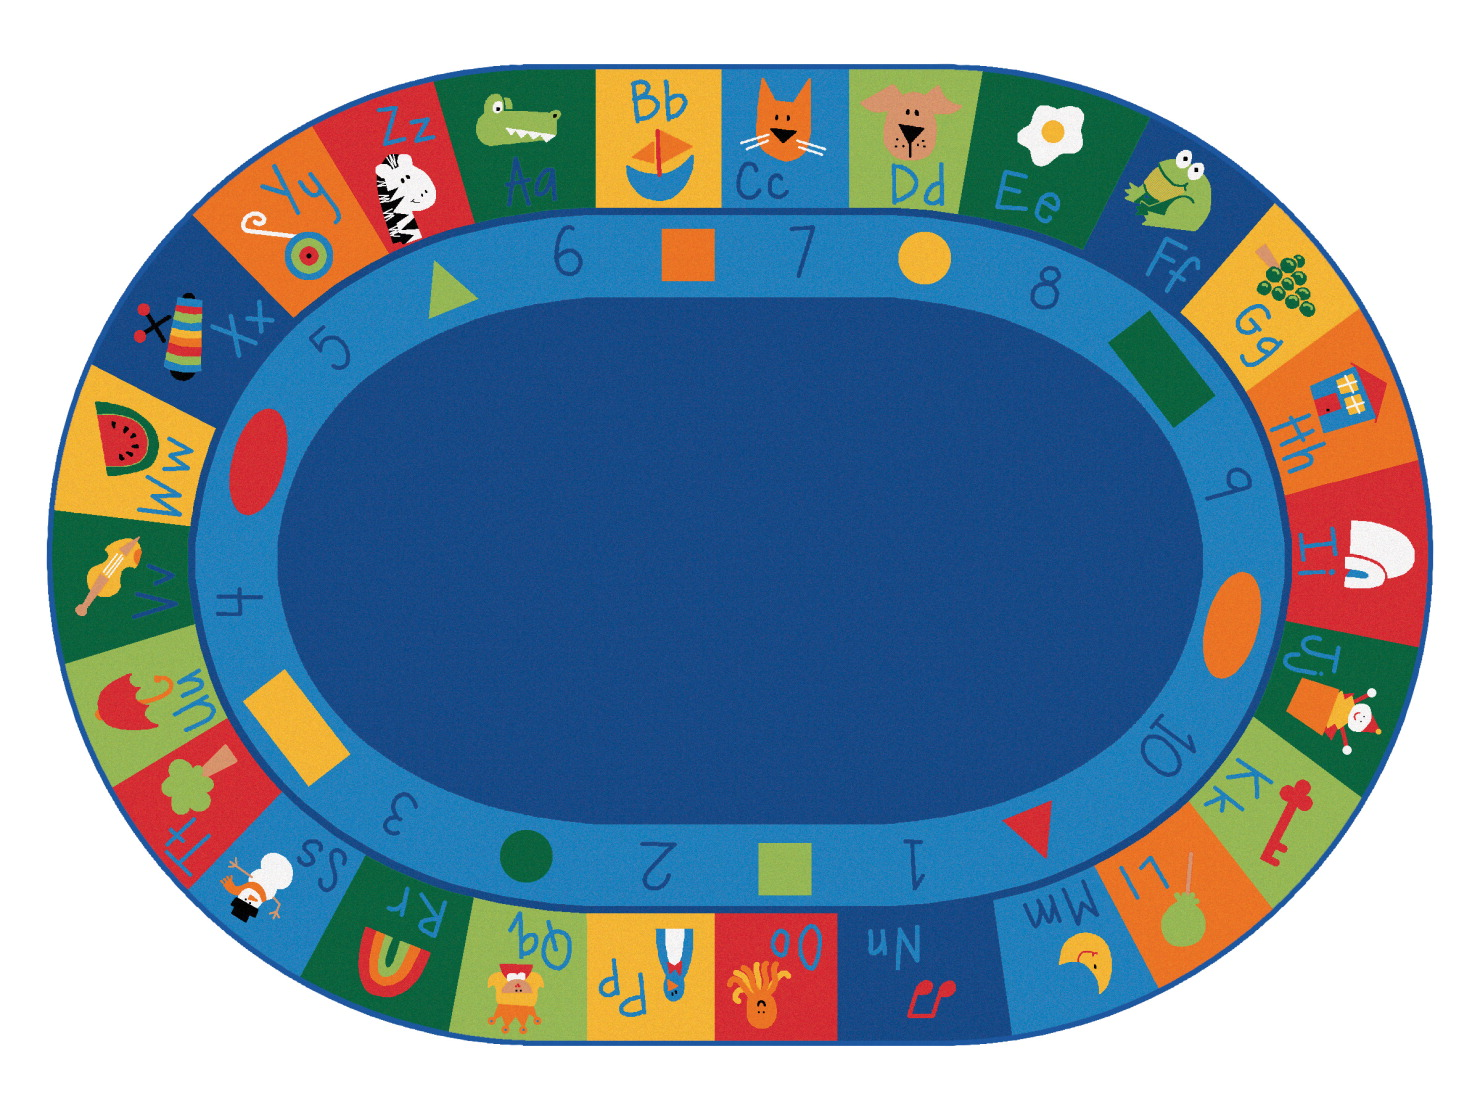 Carpets For Kids Blocks Learning Rug, 6 Feet 9 Inches x 9 Feet 5 Inches, Oval, Multi-Color